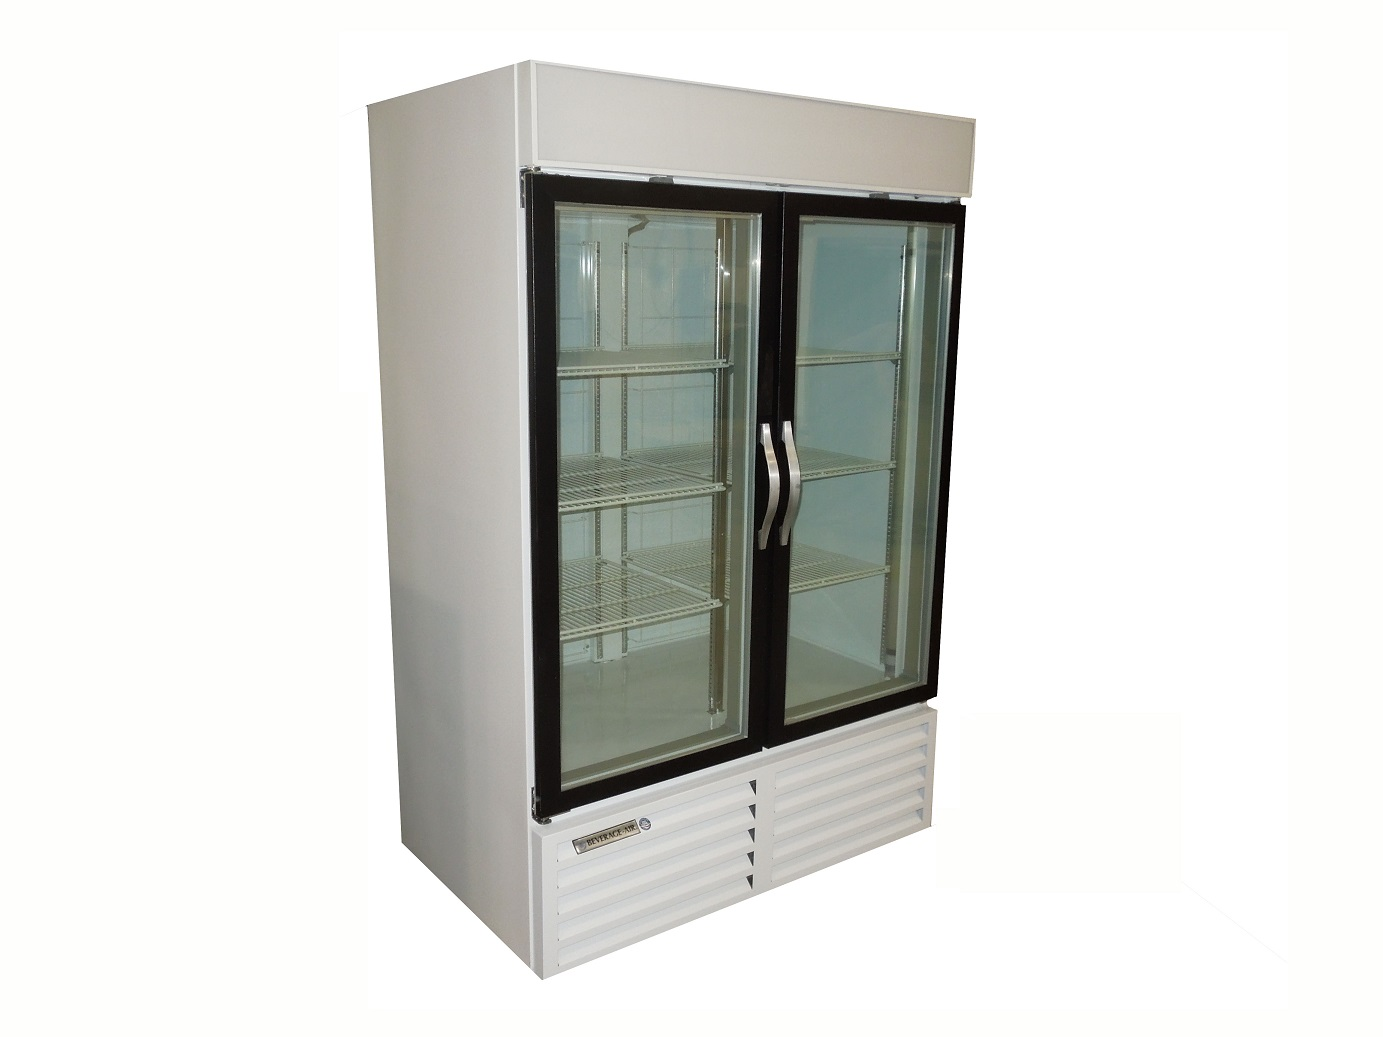 Beverage Air Glass Door Freezer Used Wiring Diagram Two View Detailed Images 3